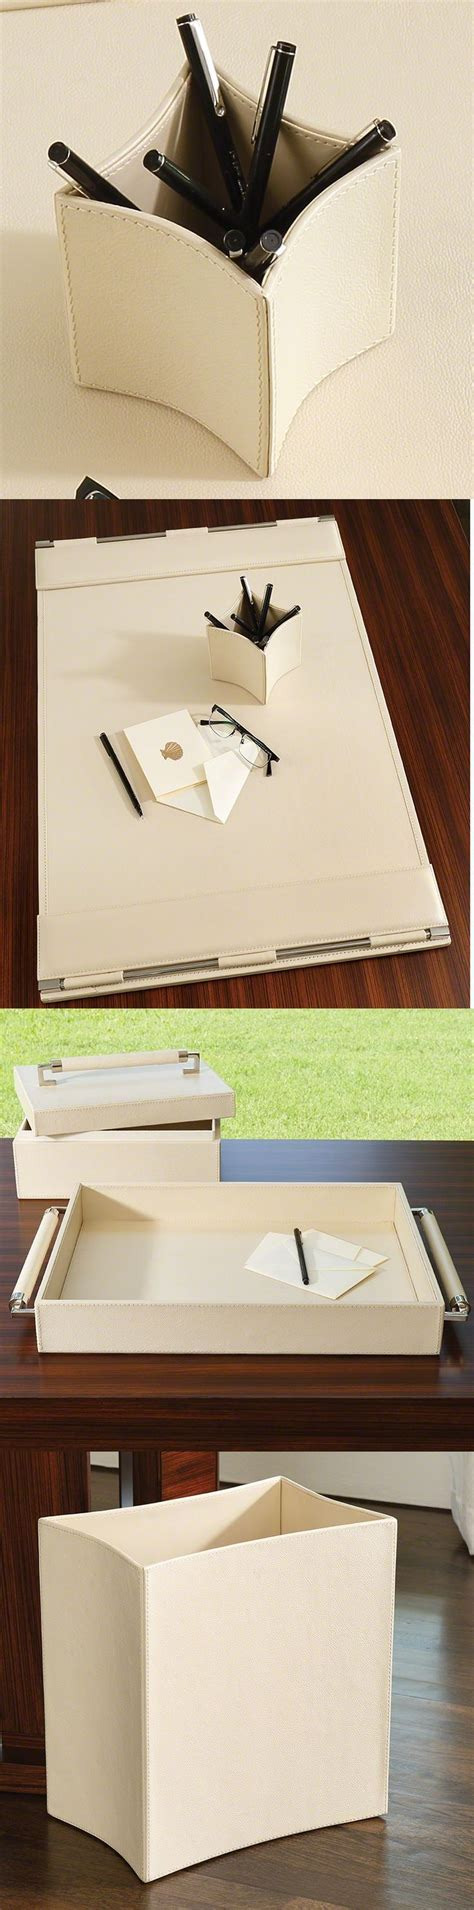 Diy Desk Blotter Best 25 Desk Pad Ideas On Pinterest Desk Mat Diy Decorate Office Cubicle And Diy Decorate